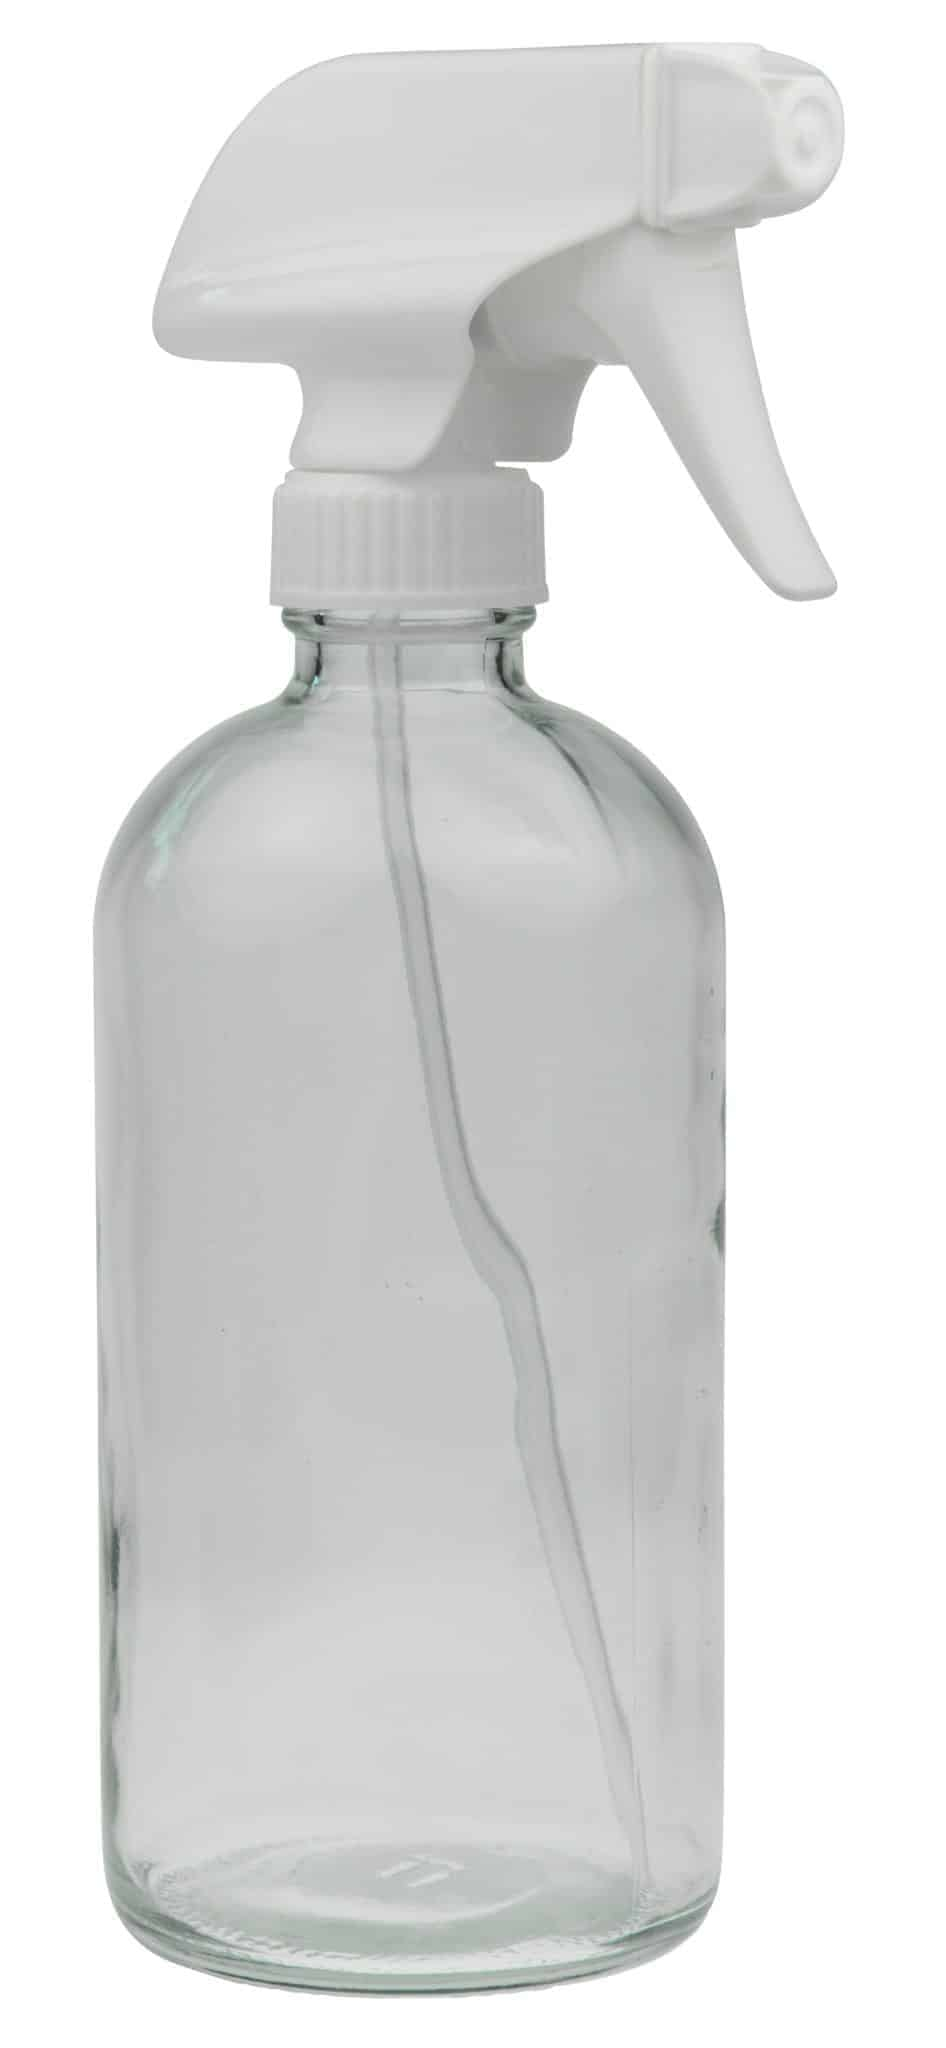 16oz Clear Glass Spray Bottle with White Spray Nozzle ~ 1 Pack Image